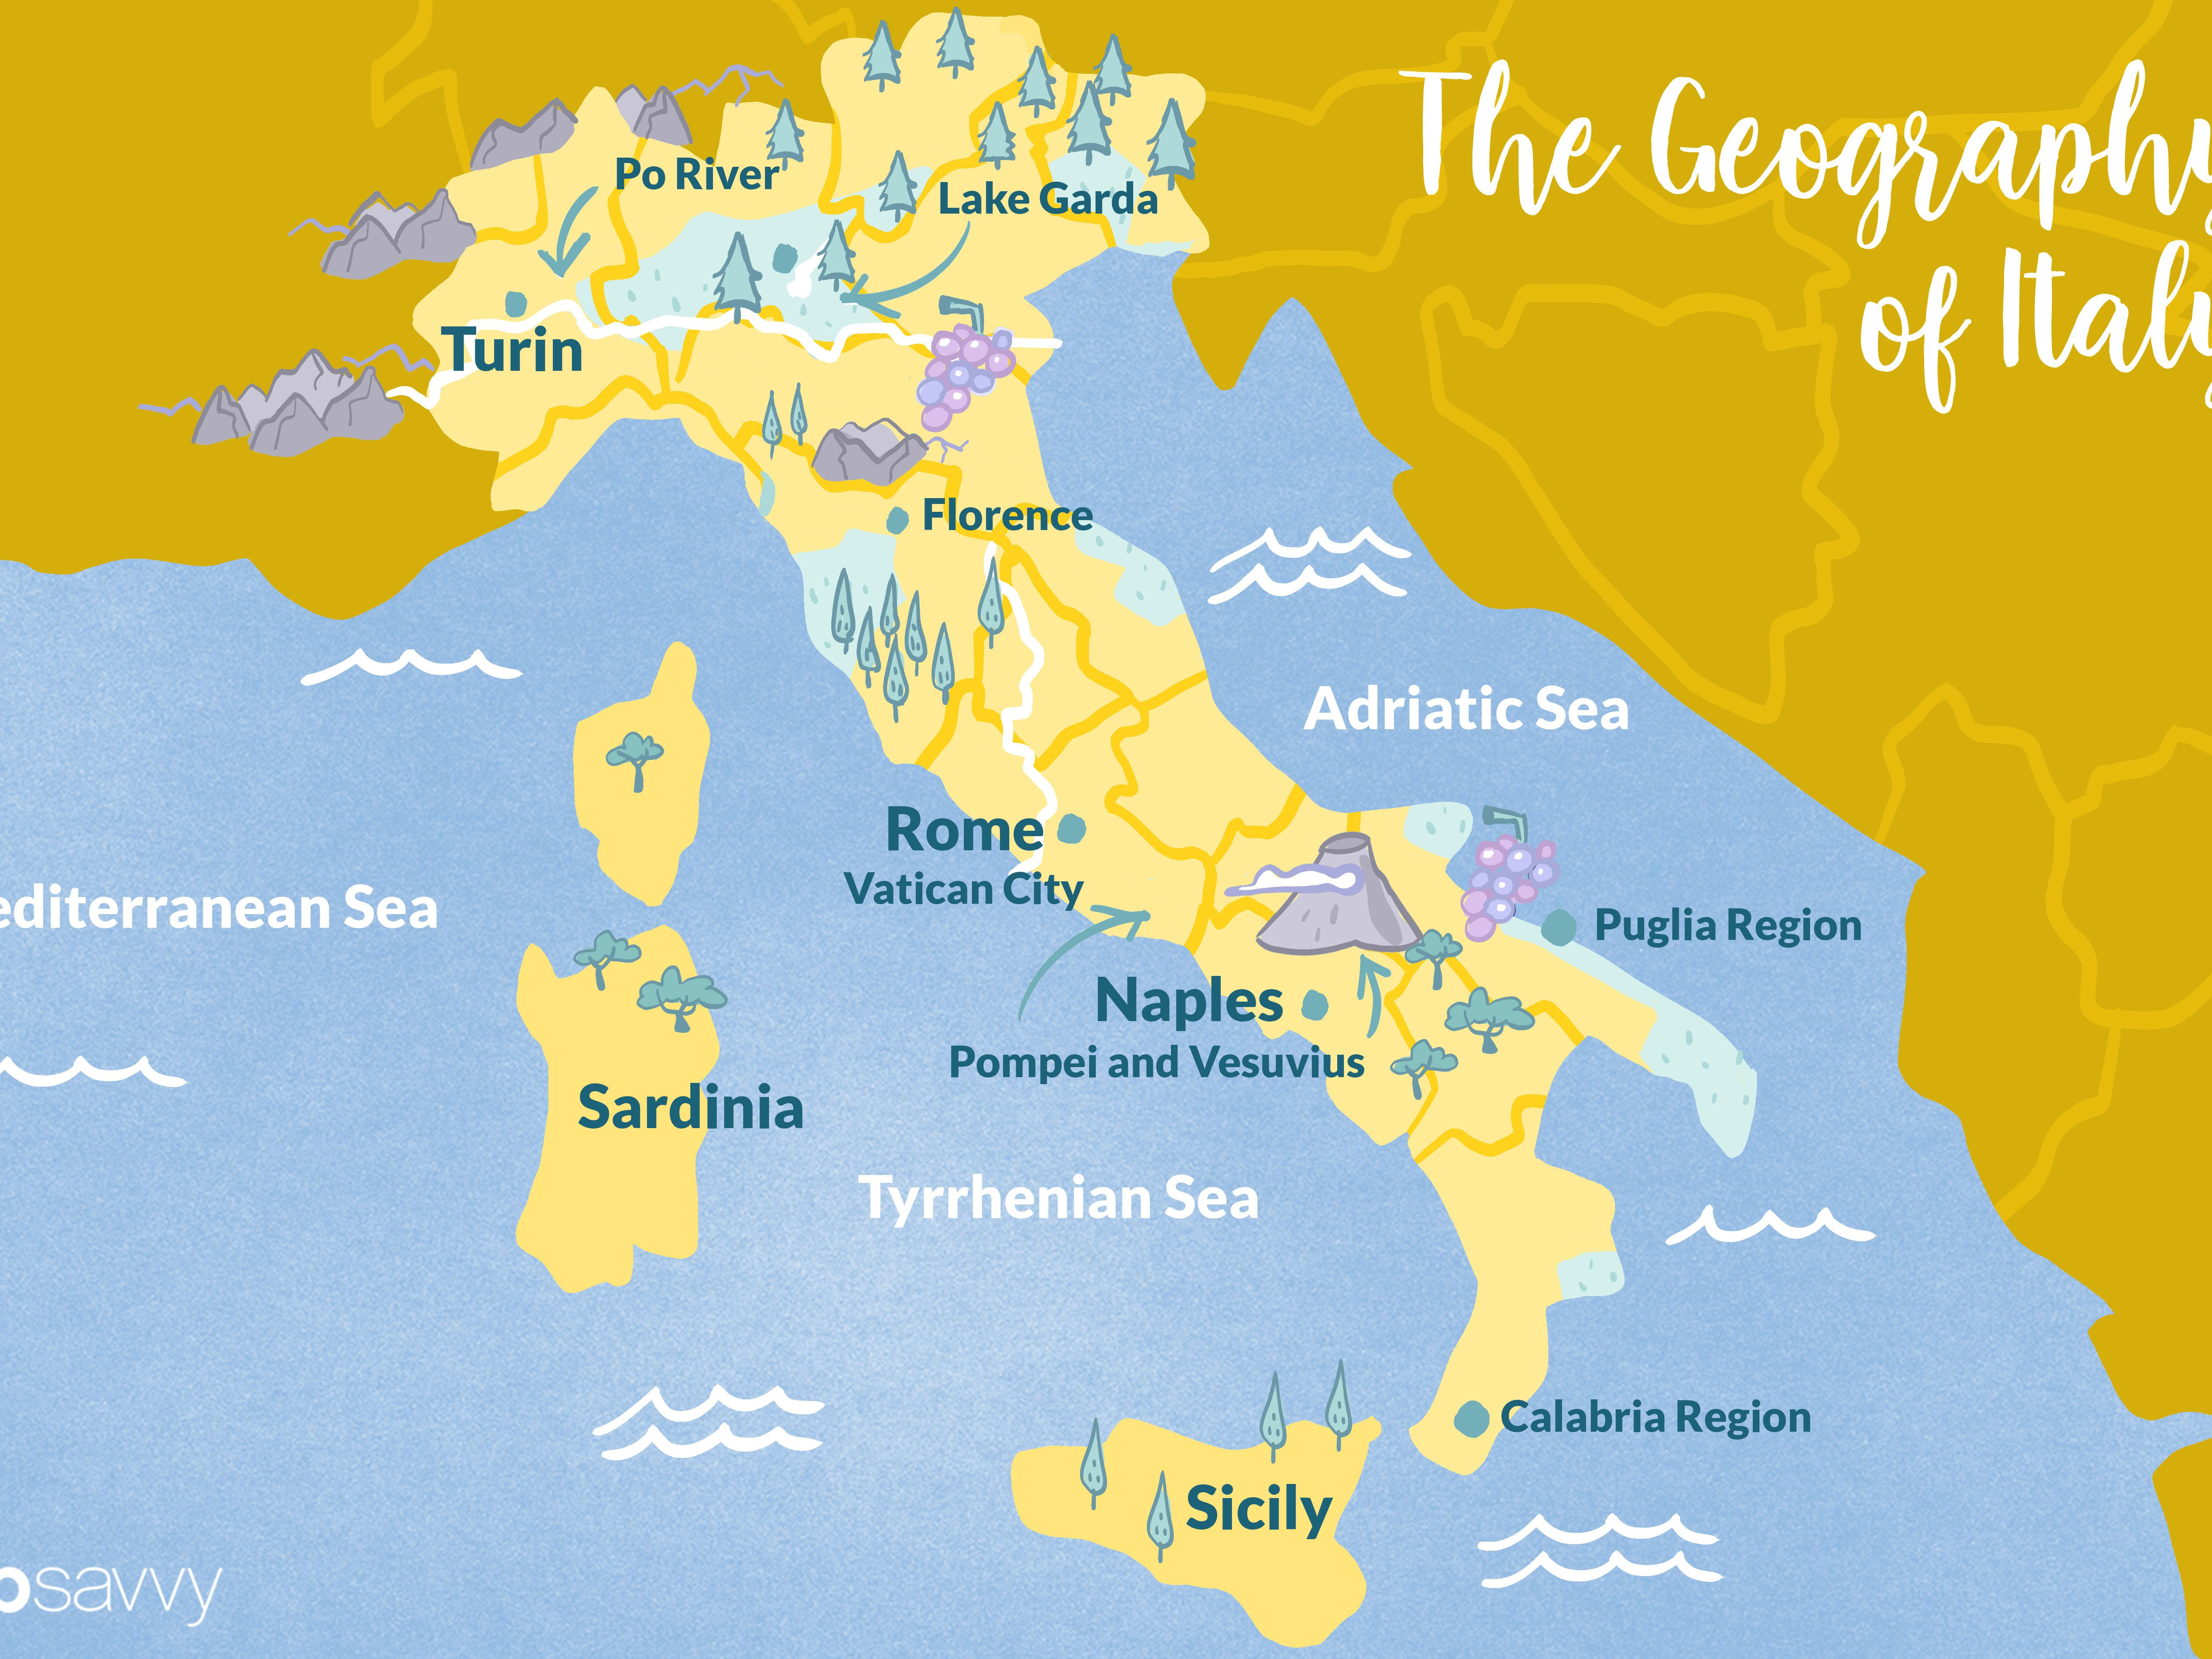 The Geography of Italy: Map and Geographical Facts on geographical map of macedonia, geographical map of malaysia, geographical map of madrid, geographical map of south central asia, geographical map of bahamas, geographical map of the former soviet union, timeline of southern europe, geographical map of tuscany, physical characteristics of europe, geographical map of western us, geographical map of united states, geographical map of papua new guinea, physical features of europe, geographical map of luxembourg, geographical map of balkans, geographical map of eastern asia, blank topographic map of europe, geographical map of japan, geographical map of belarus, map of northern europe,